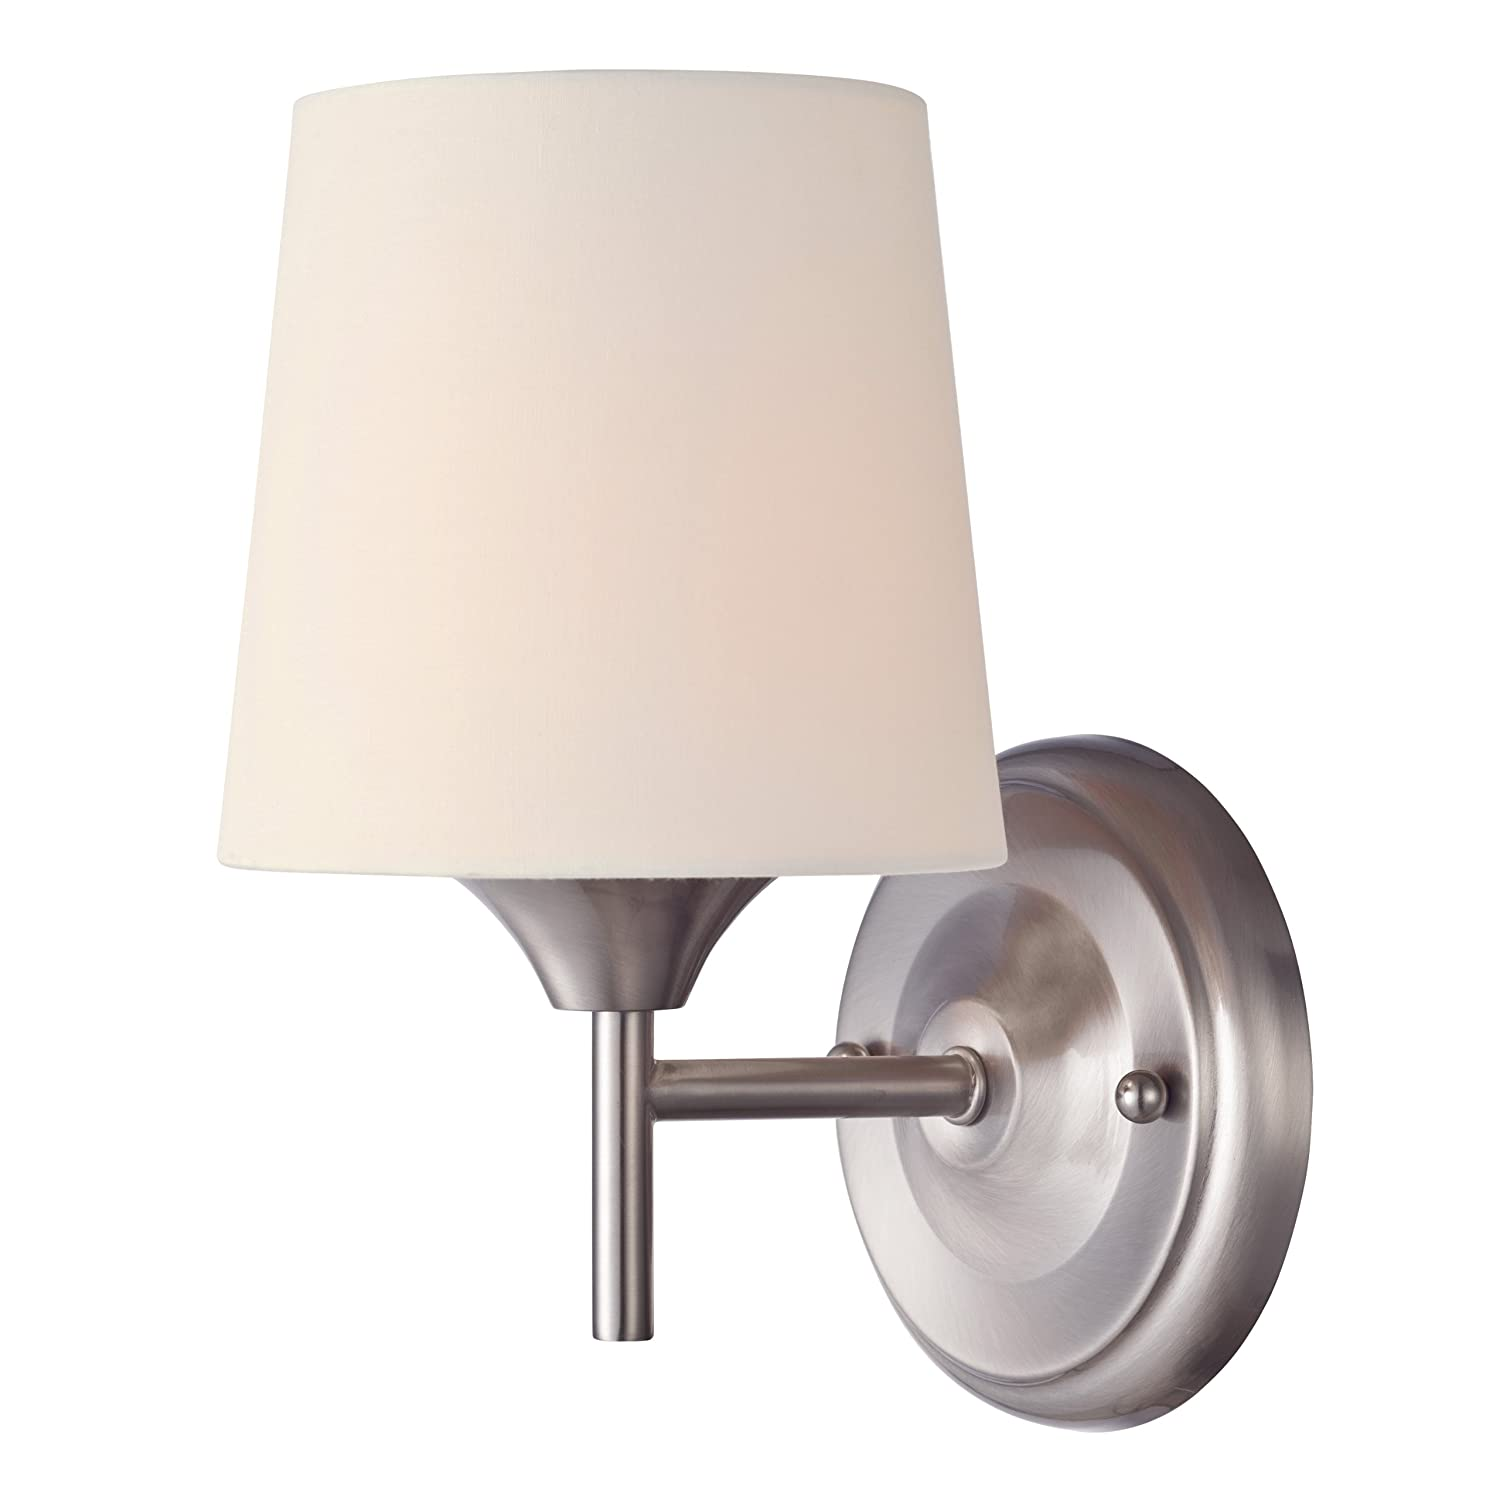 Westinghouse 6226000 Parker Mews One Light Interior Wall Fixture Brushed Nickel Finish With White Linen Fabric Shade Sconces Com